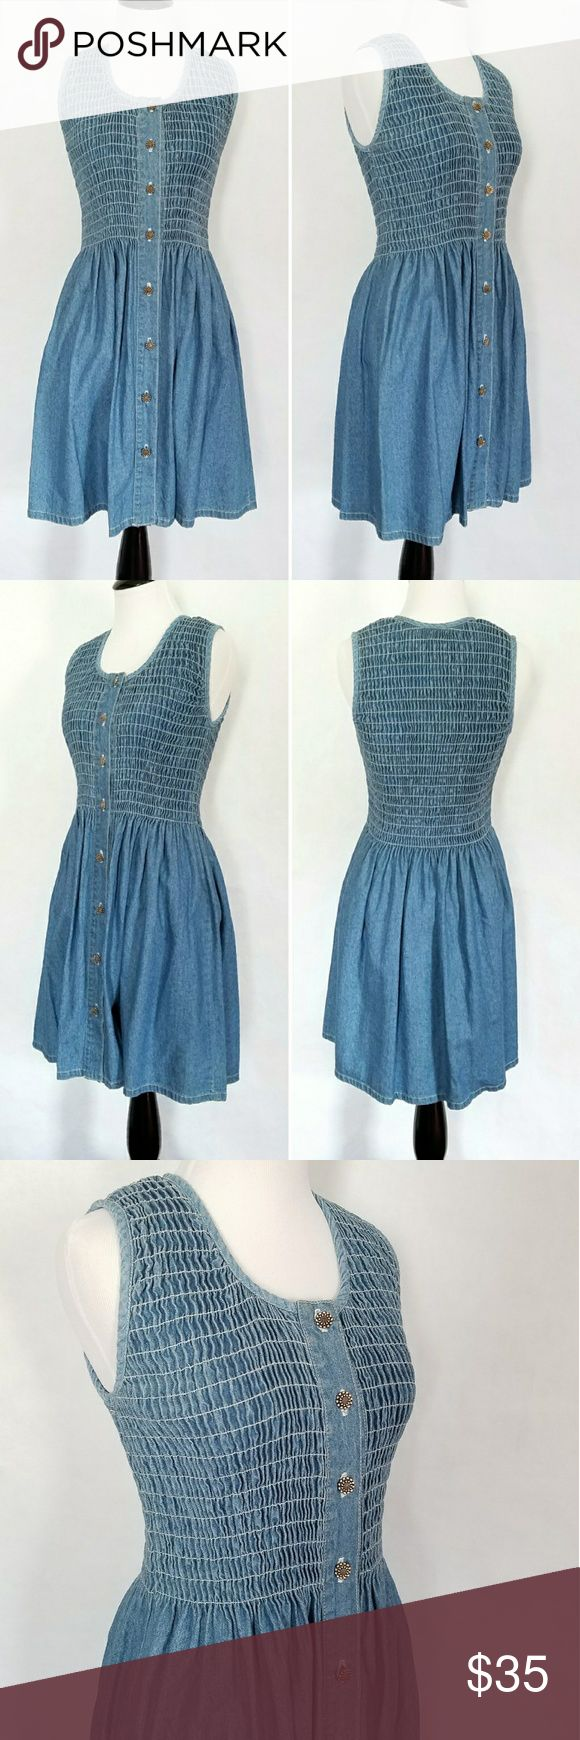 Denim Fit and Flare Dress Beautiful denim fit and flare dress with cute front silver button closure and smocked top.  100% cotton. Dresses Midi